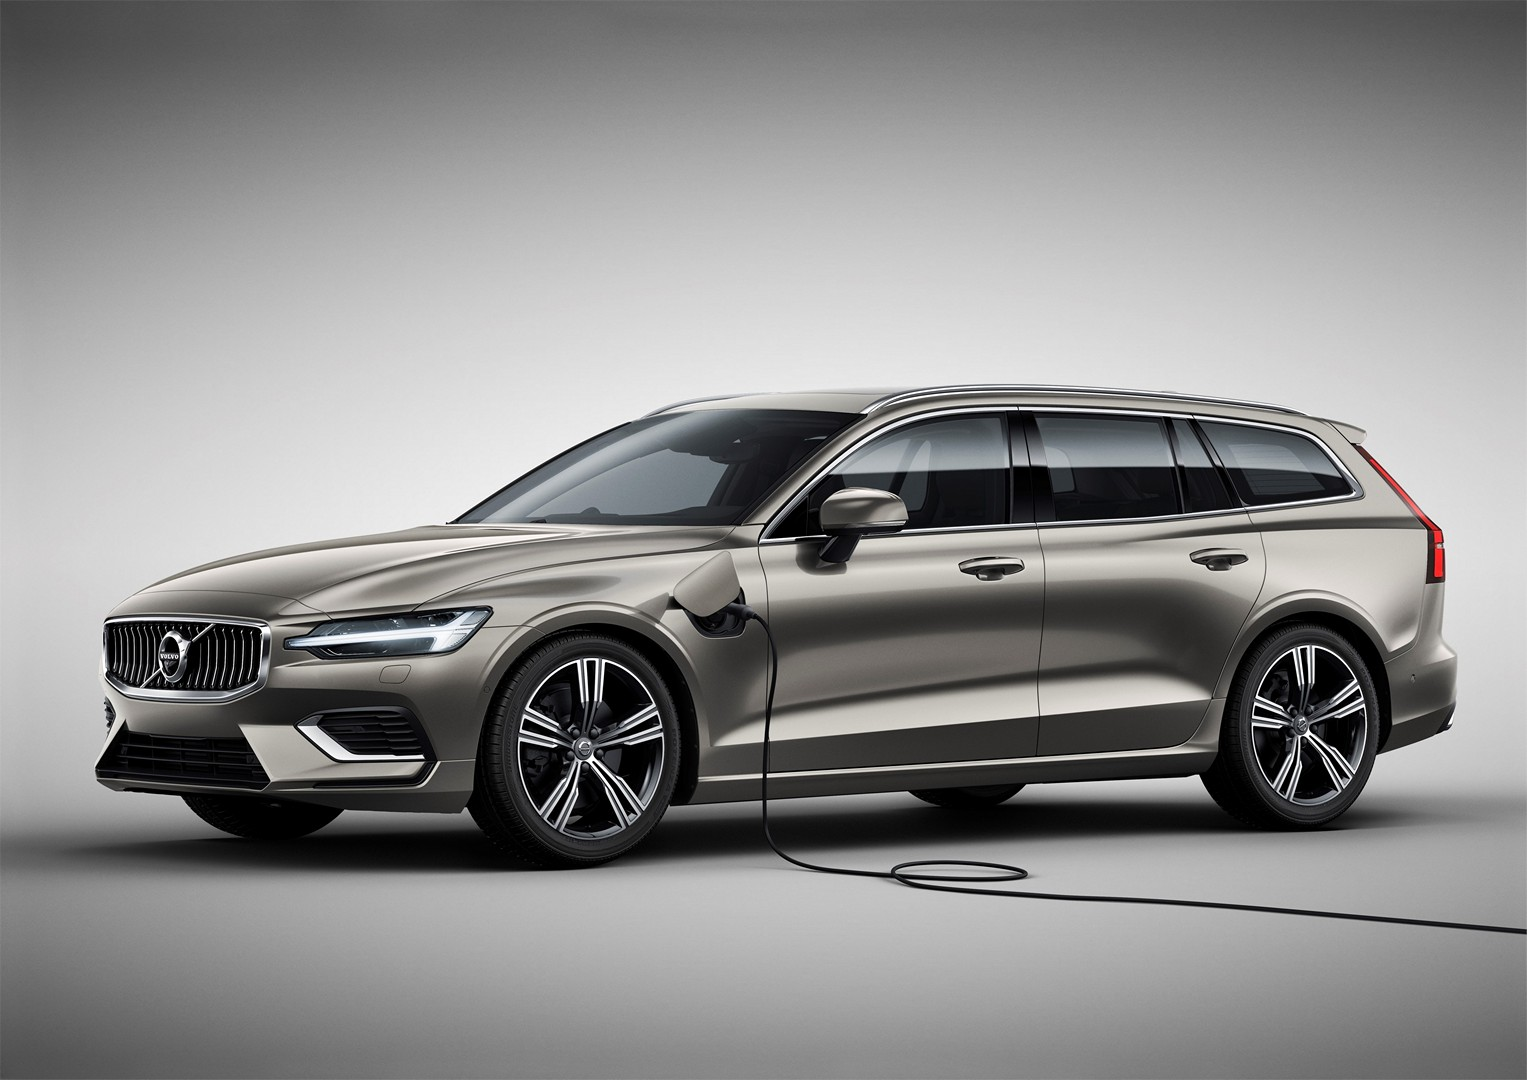 2019 Volvo V60 Officially Unveiled. Sexy Wagon Gets Two PHEV Engines - autoevolution